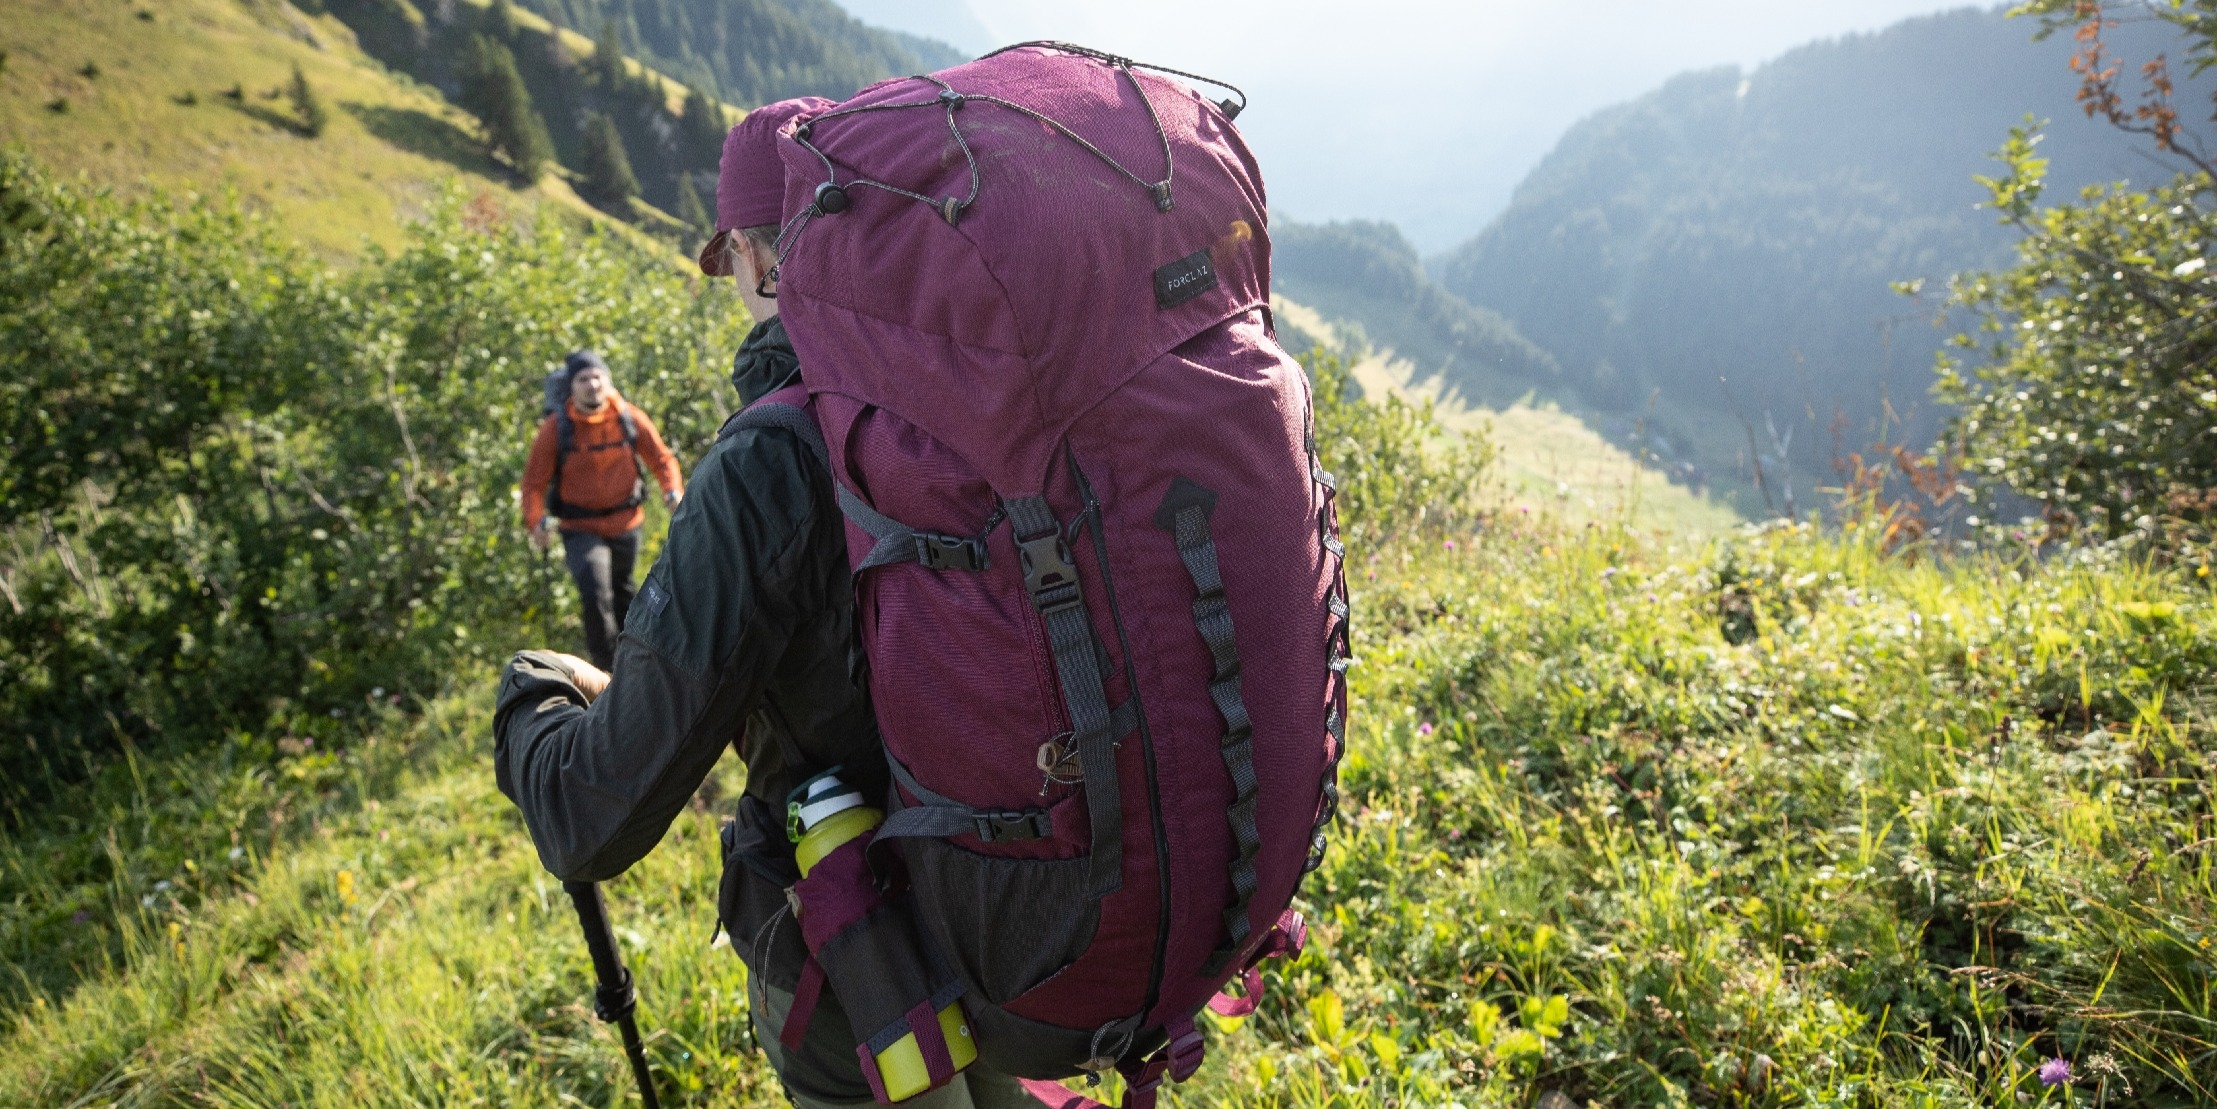 Where Is Good To Go Trekking For Beginners?